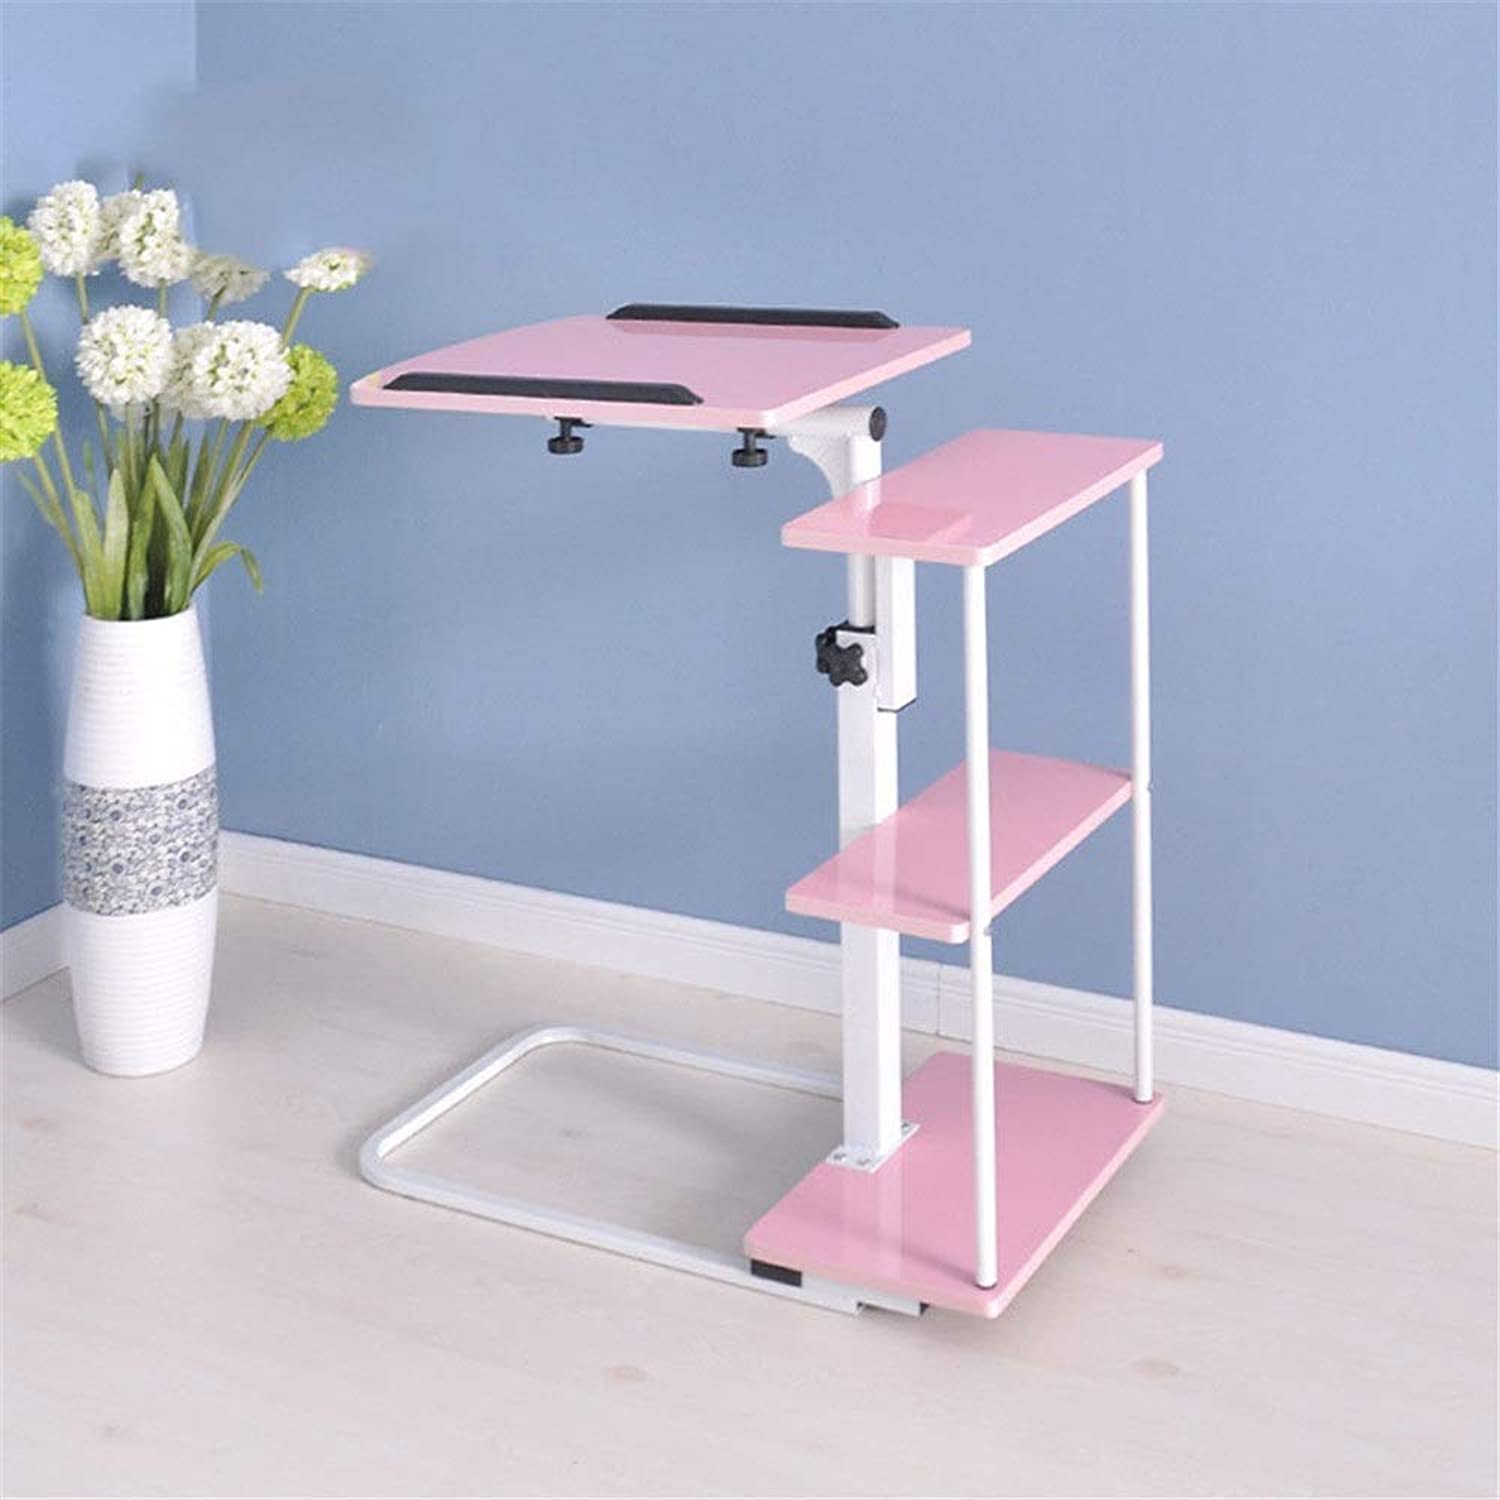 Bed Desk Overbed Table with Castors Adjustable Height and Angle Removable Laptop Desk with Wheels Bed Sofa Portable Stopper Ledge Student Dorm Home Office,B